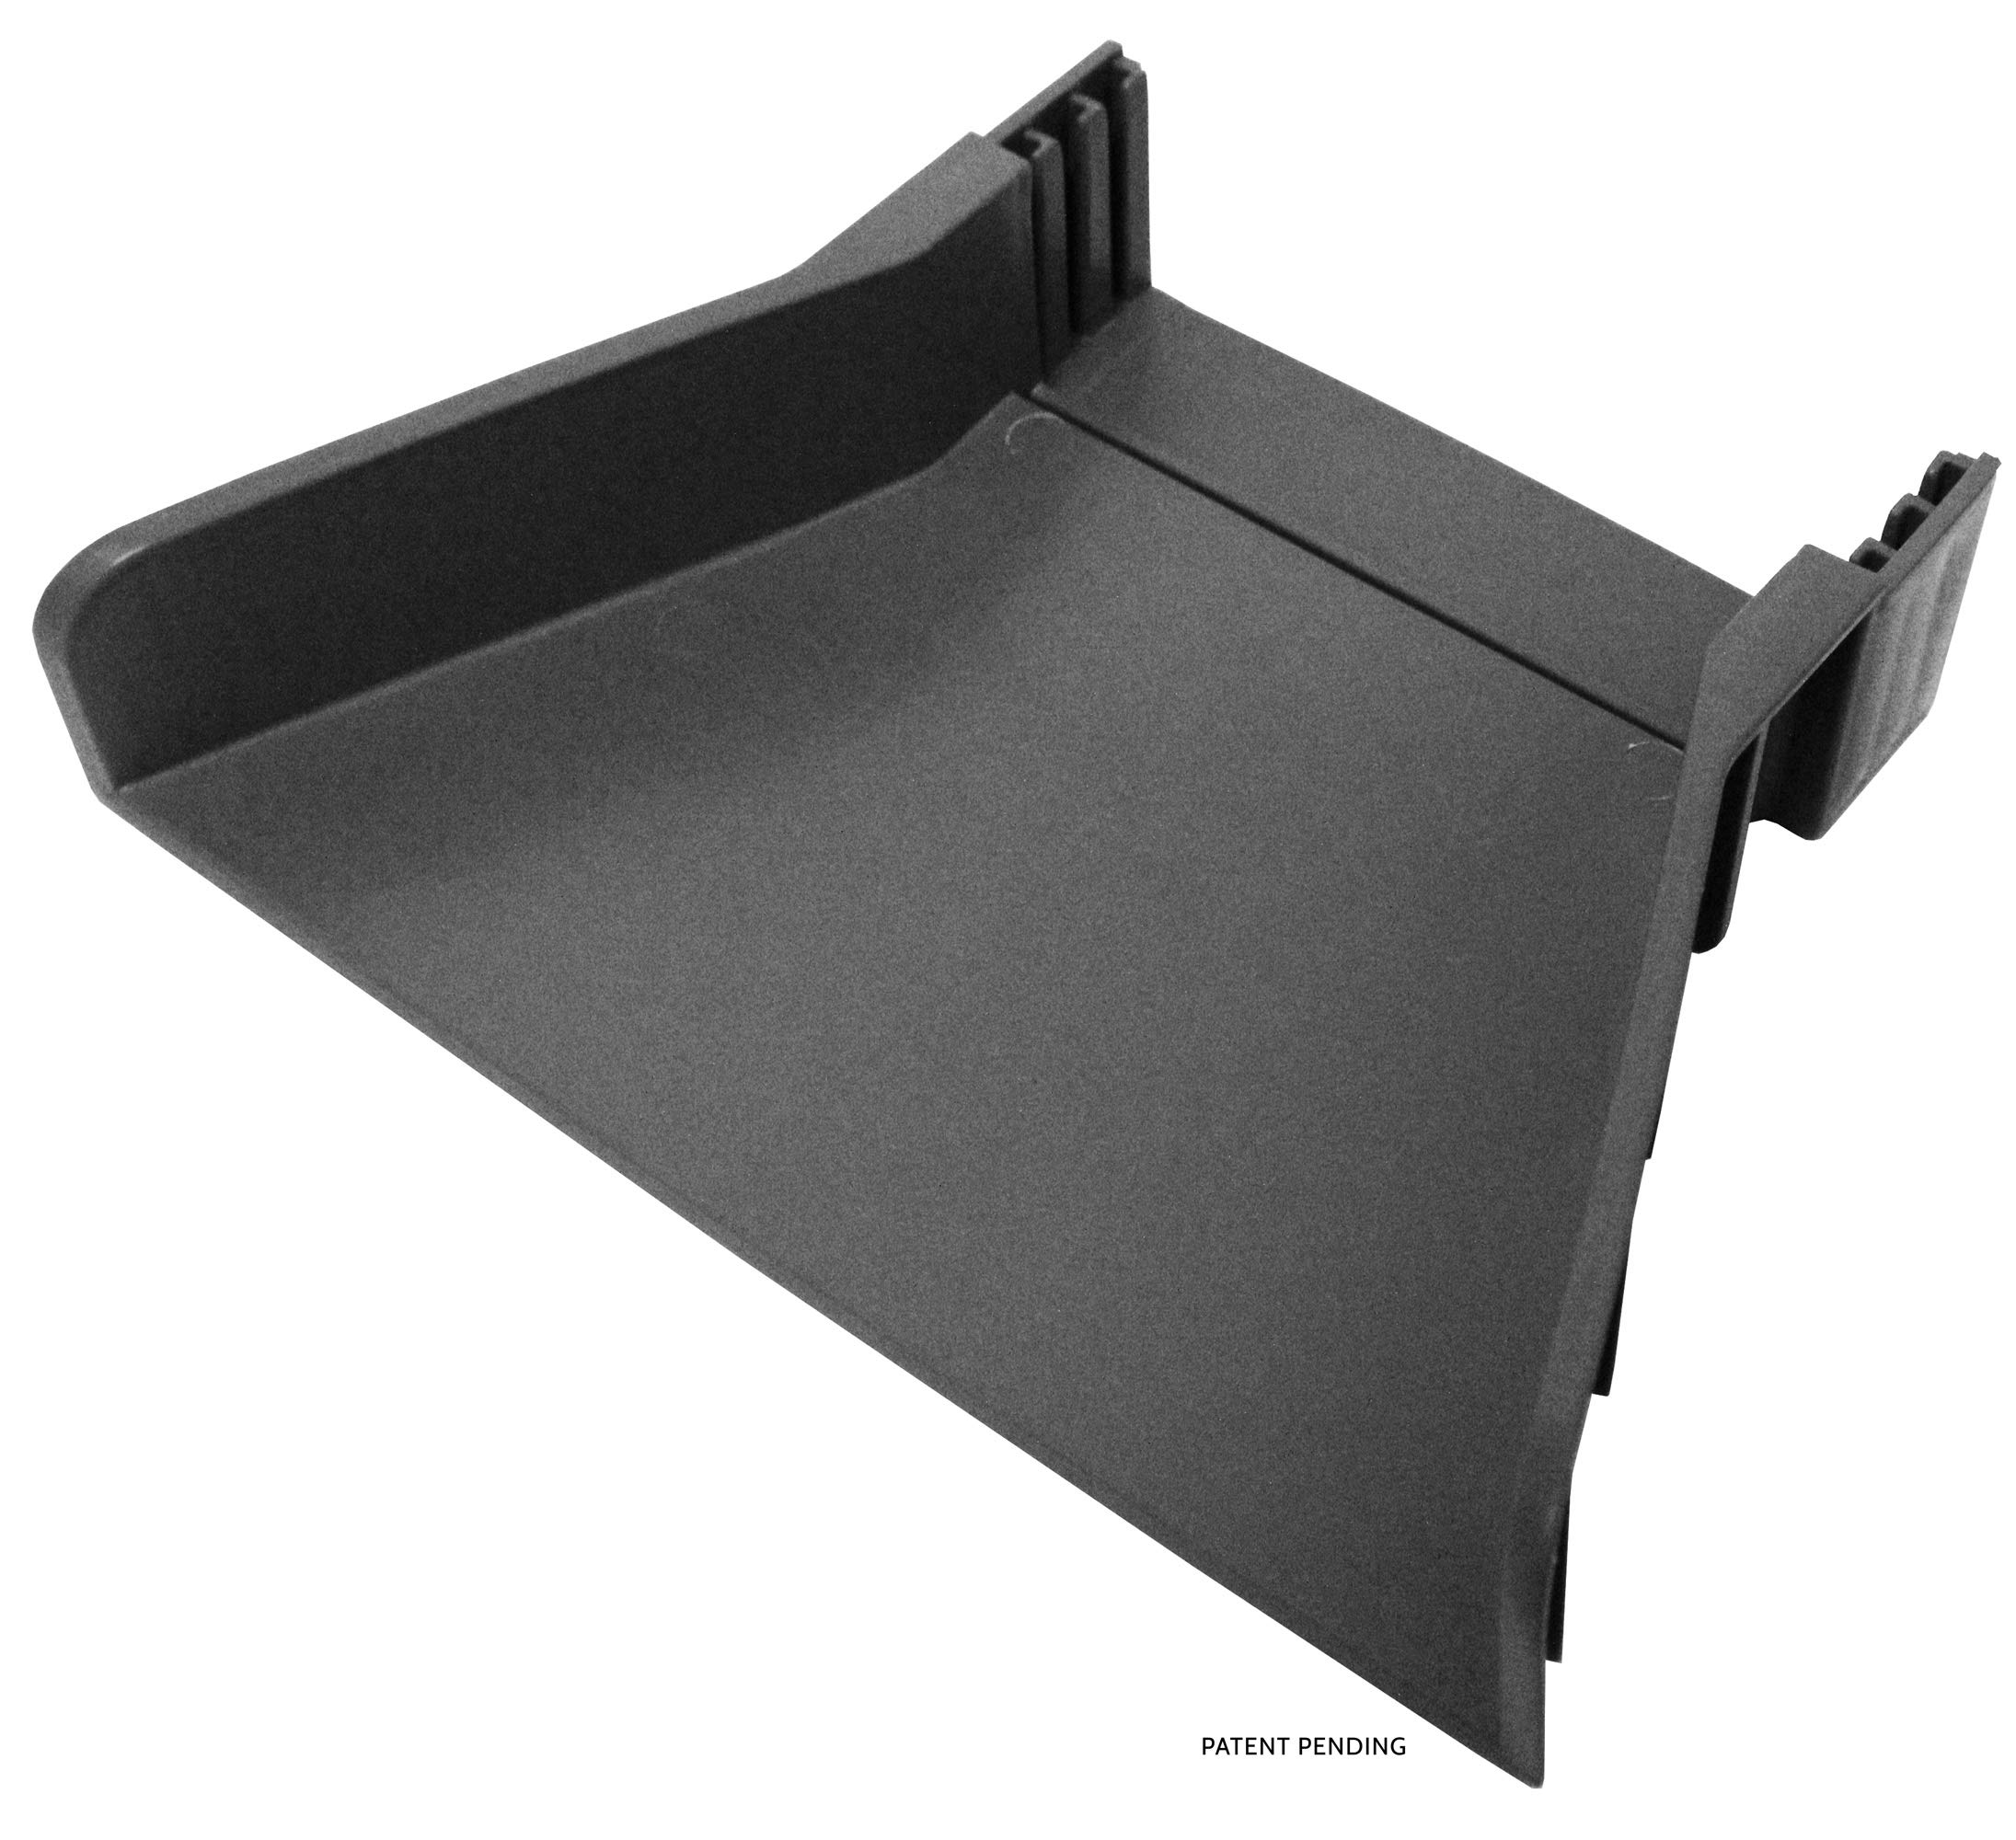 Sluice Fox Modular Sluice Box System for Gold Panning Kits (Flare Only (Black)) by Sluice Fox (Image #1)